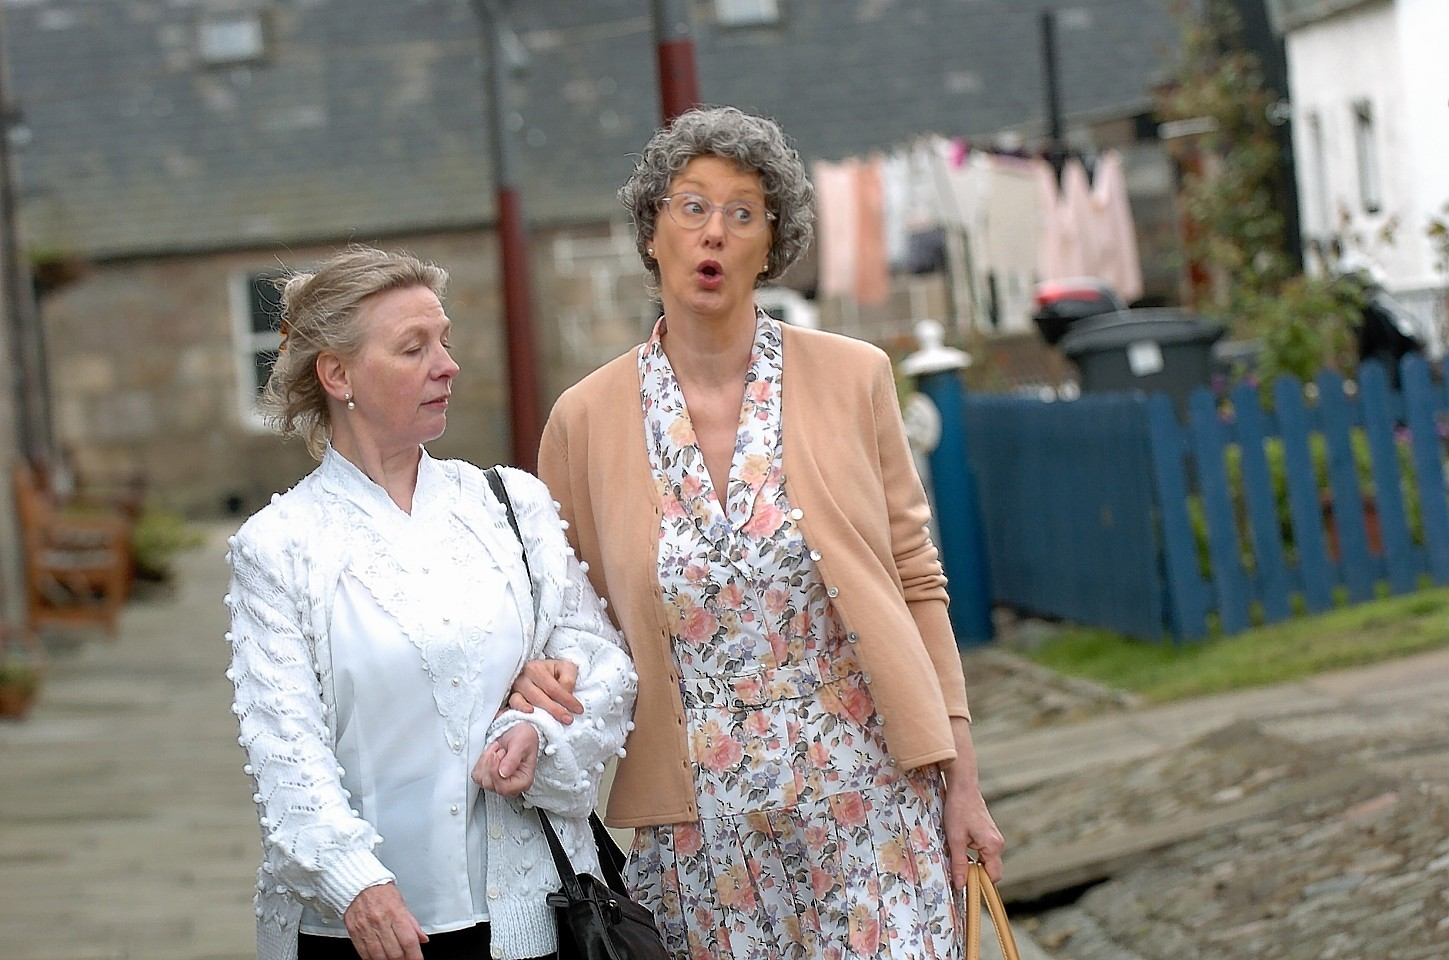 Two of the cast from the doric play 'Fooshion',  Shiela Reid (Peggy) and Yvonne Morton (Gladys). Picture by Kami Thomson